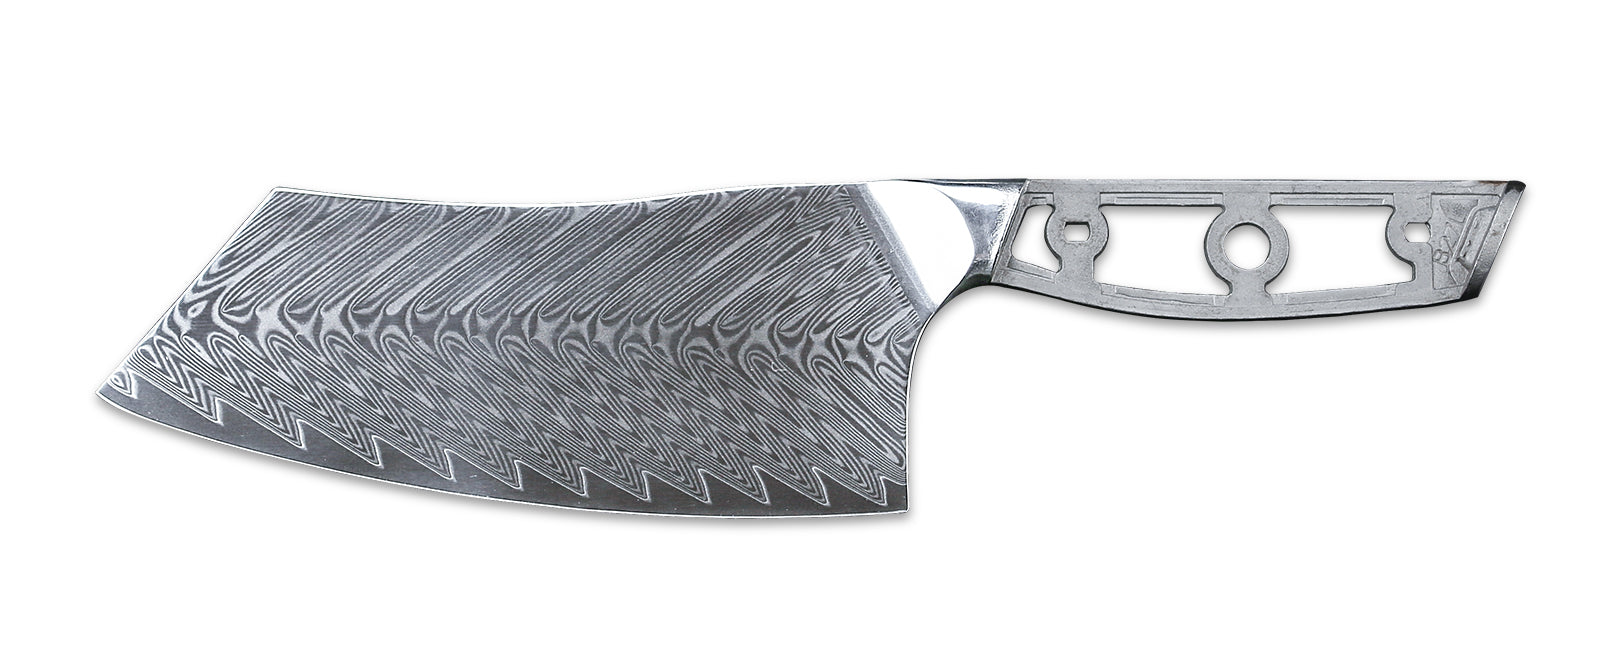 The tall blade of the Chinese Cleaver allows it to be safely guided with the knuckles of your free hand when 'tap chopping', 'push cutting', or 'pull cutting'. Therefore, large fruit and vegetables, such as cabbages, can be cut easily and safely. Just as with the Japanese Nakiri, the heel corner of the Cleaver can be used to remove blemishes from fruit and vegetables. If you love cooking Chinese food, you owe it to yourself to try a Chinese Cleaver!